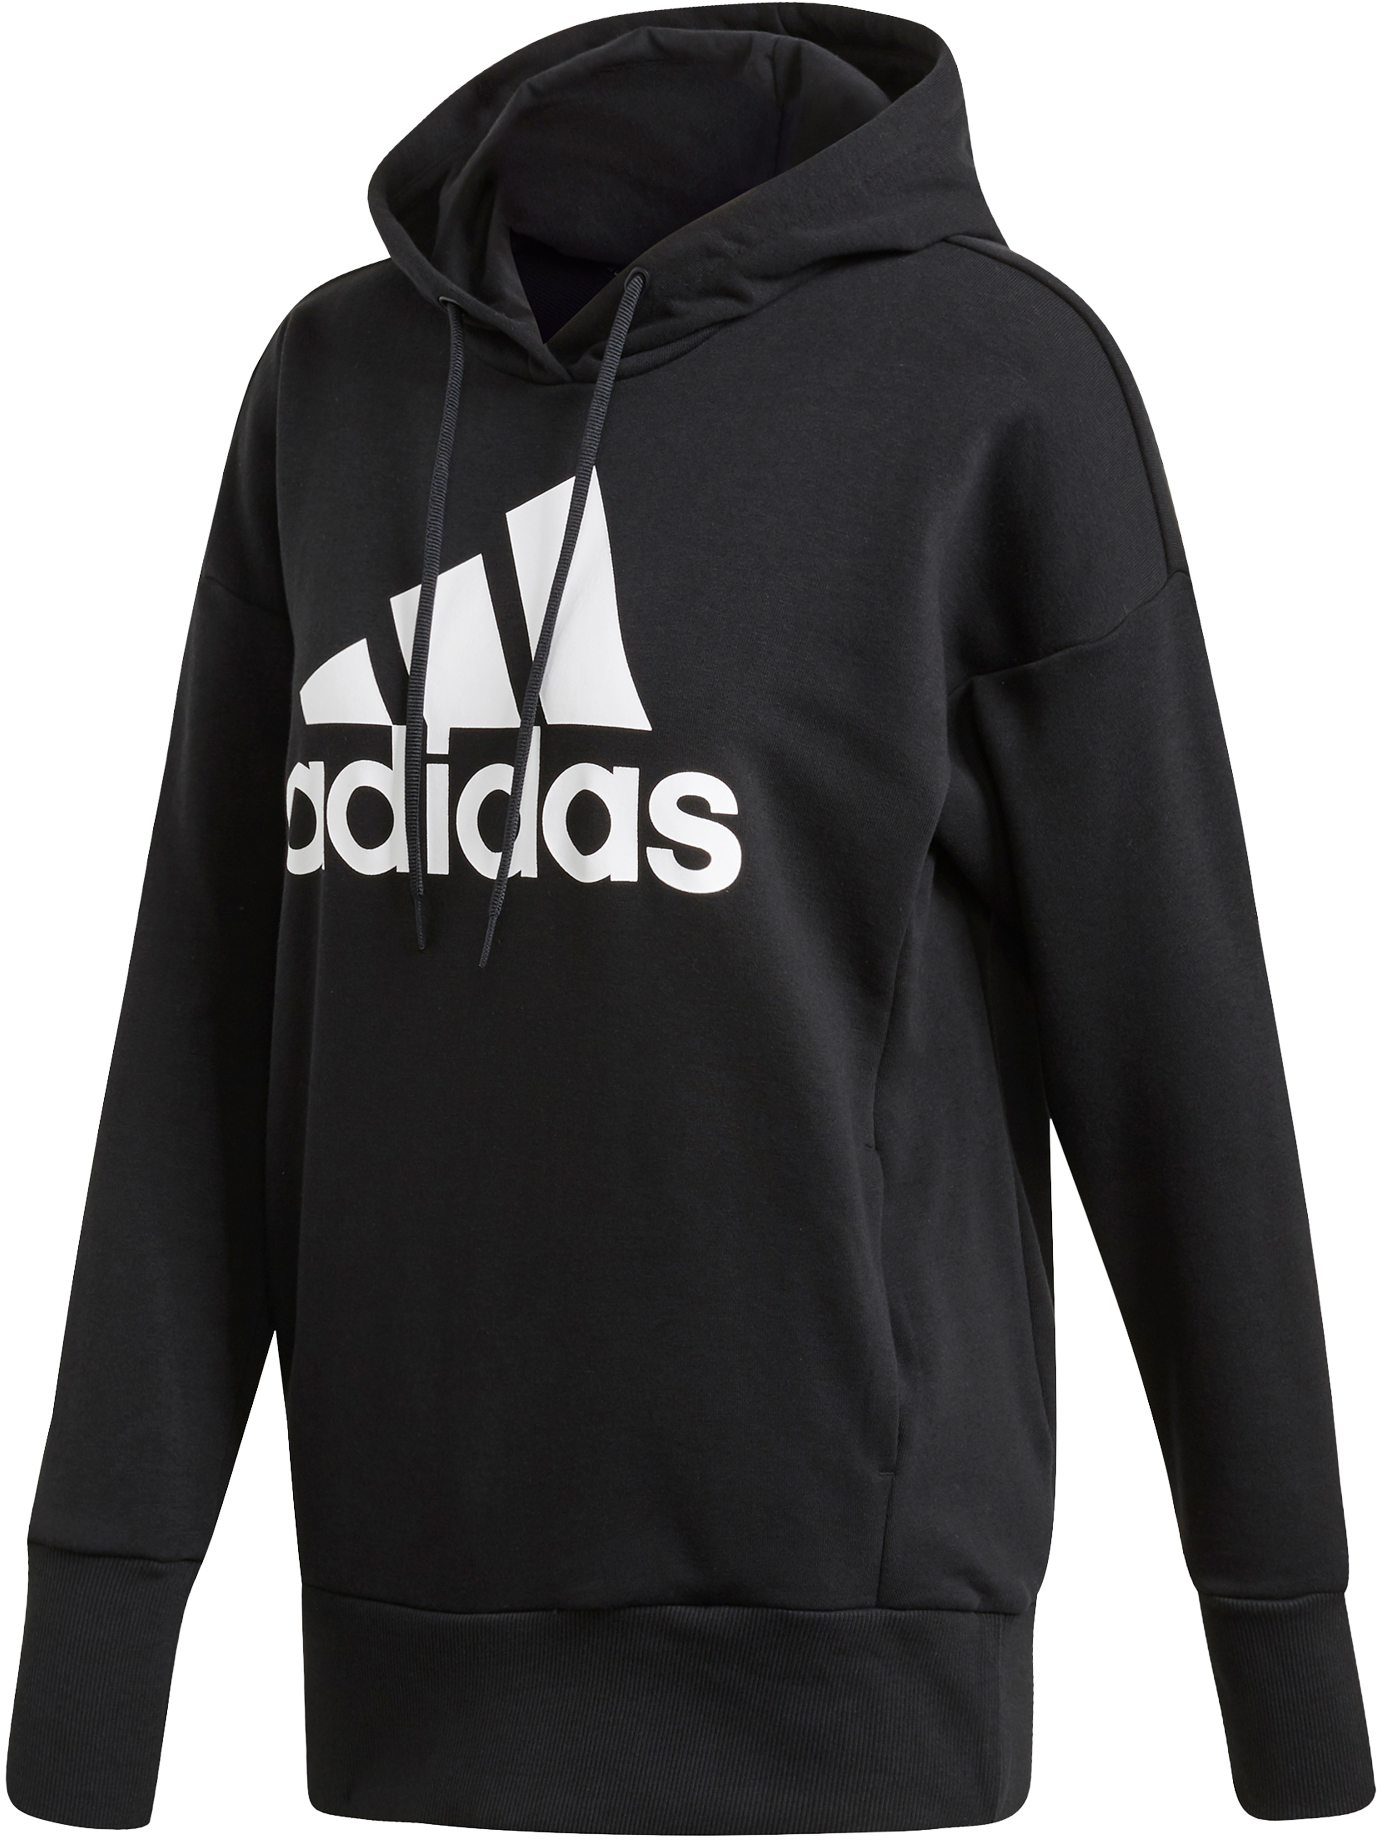 adidas Women's Badge of Sport Long Overhead Hoodie